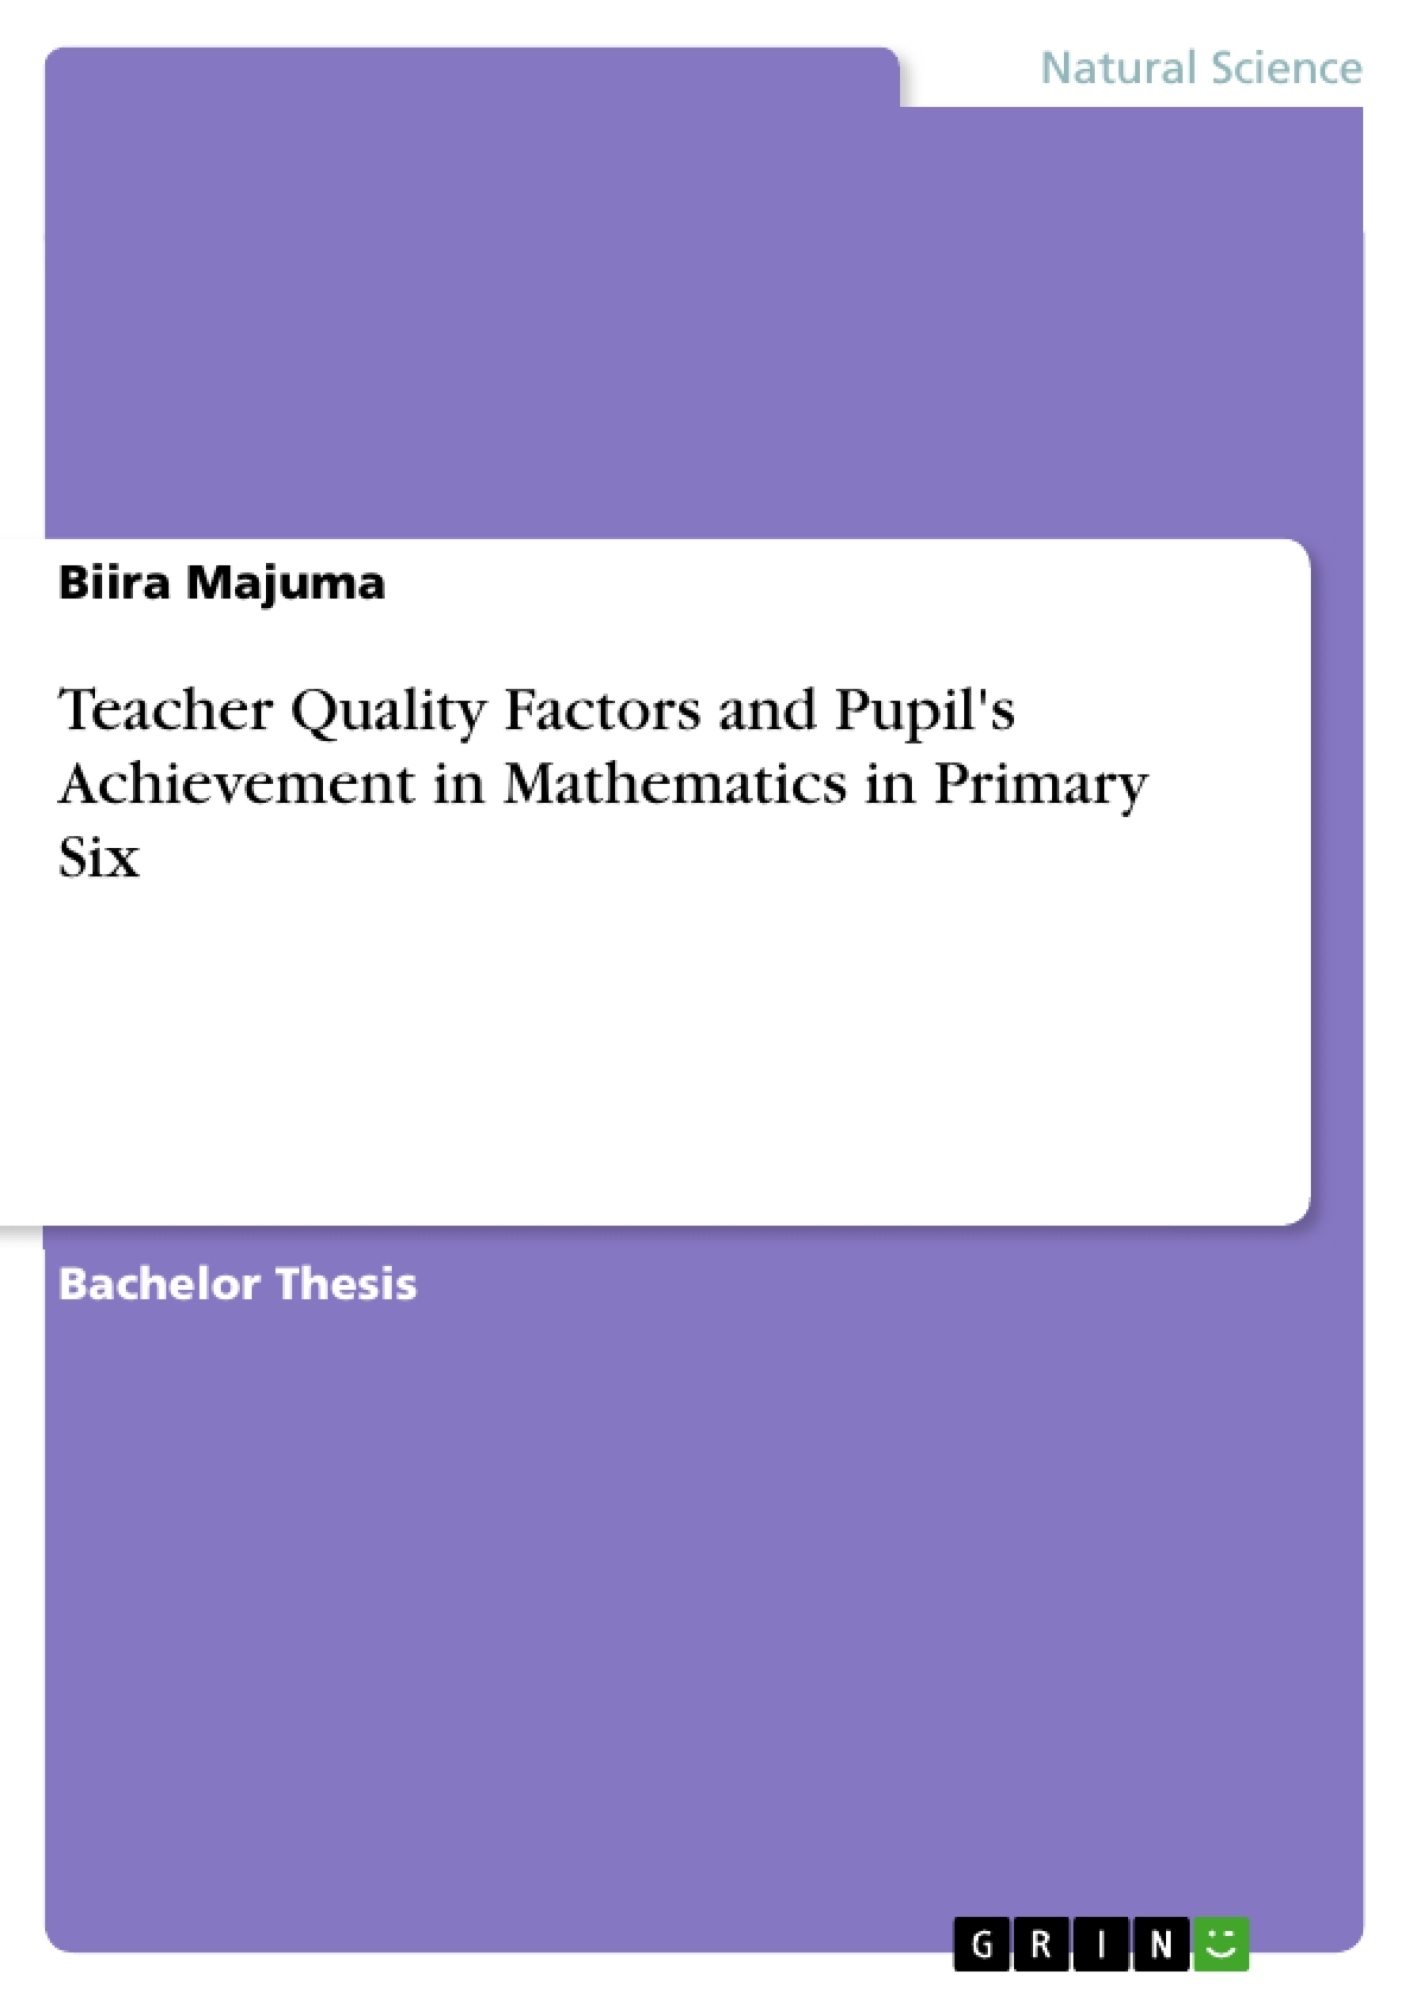 GRIN - Teacher Quality Factors and Pupil's Achievement in Mathematics in  Primary Six